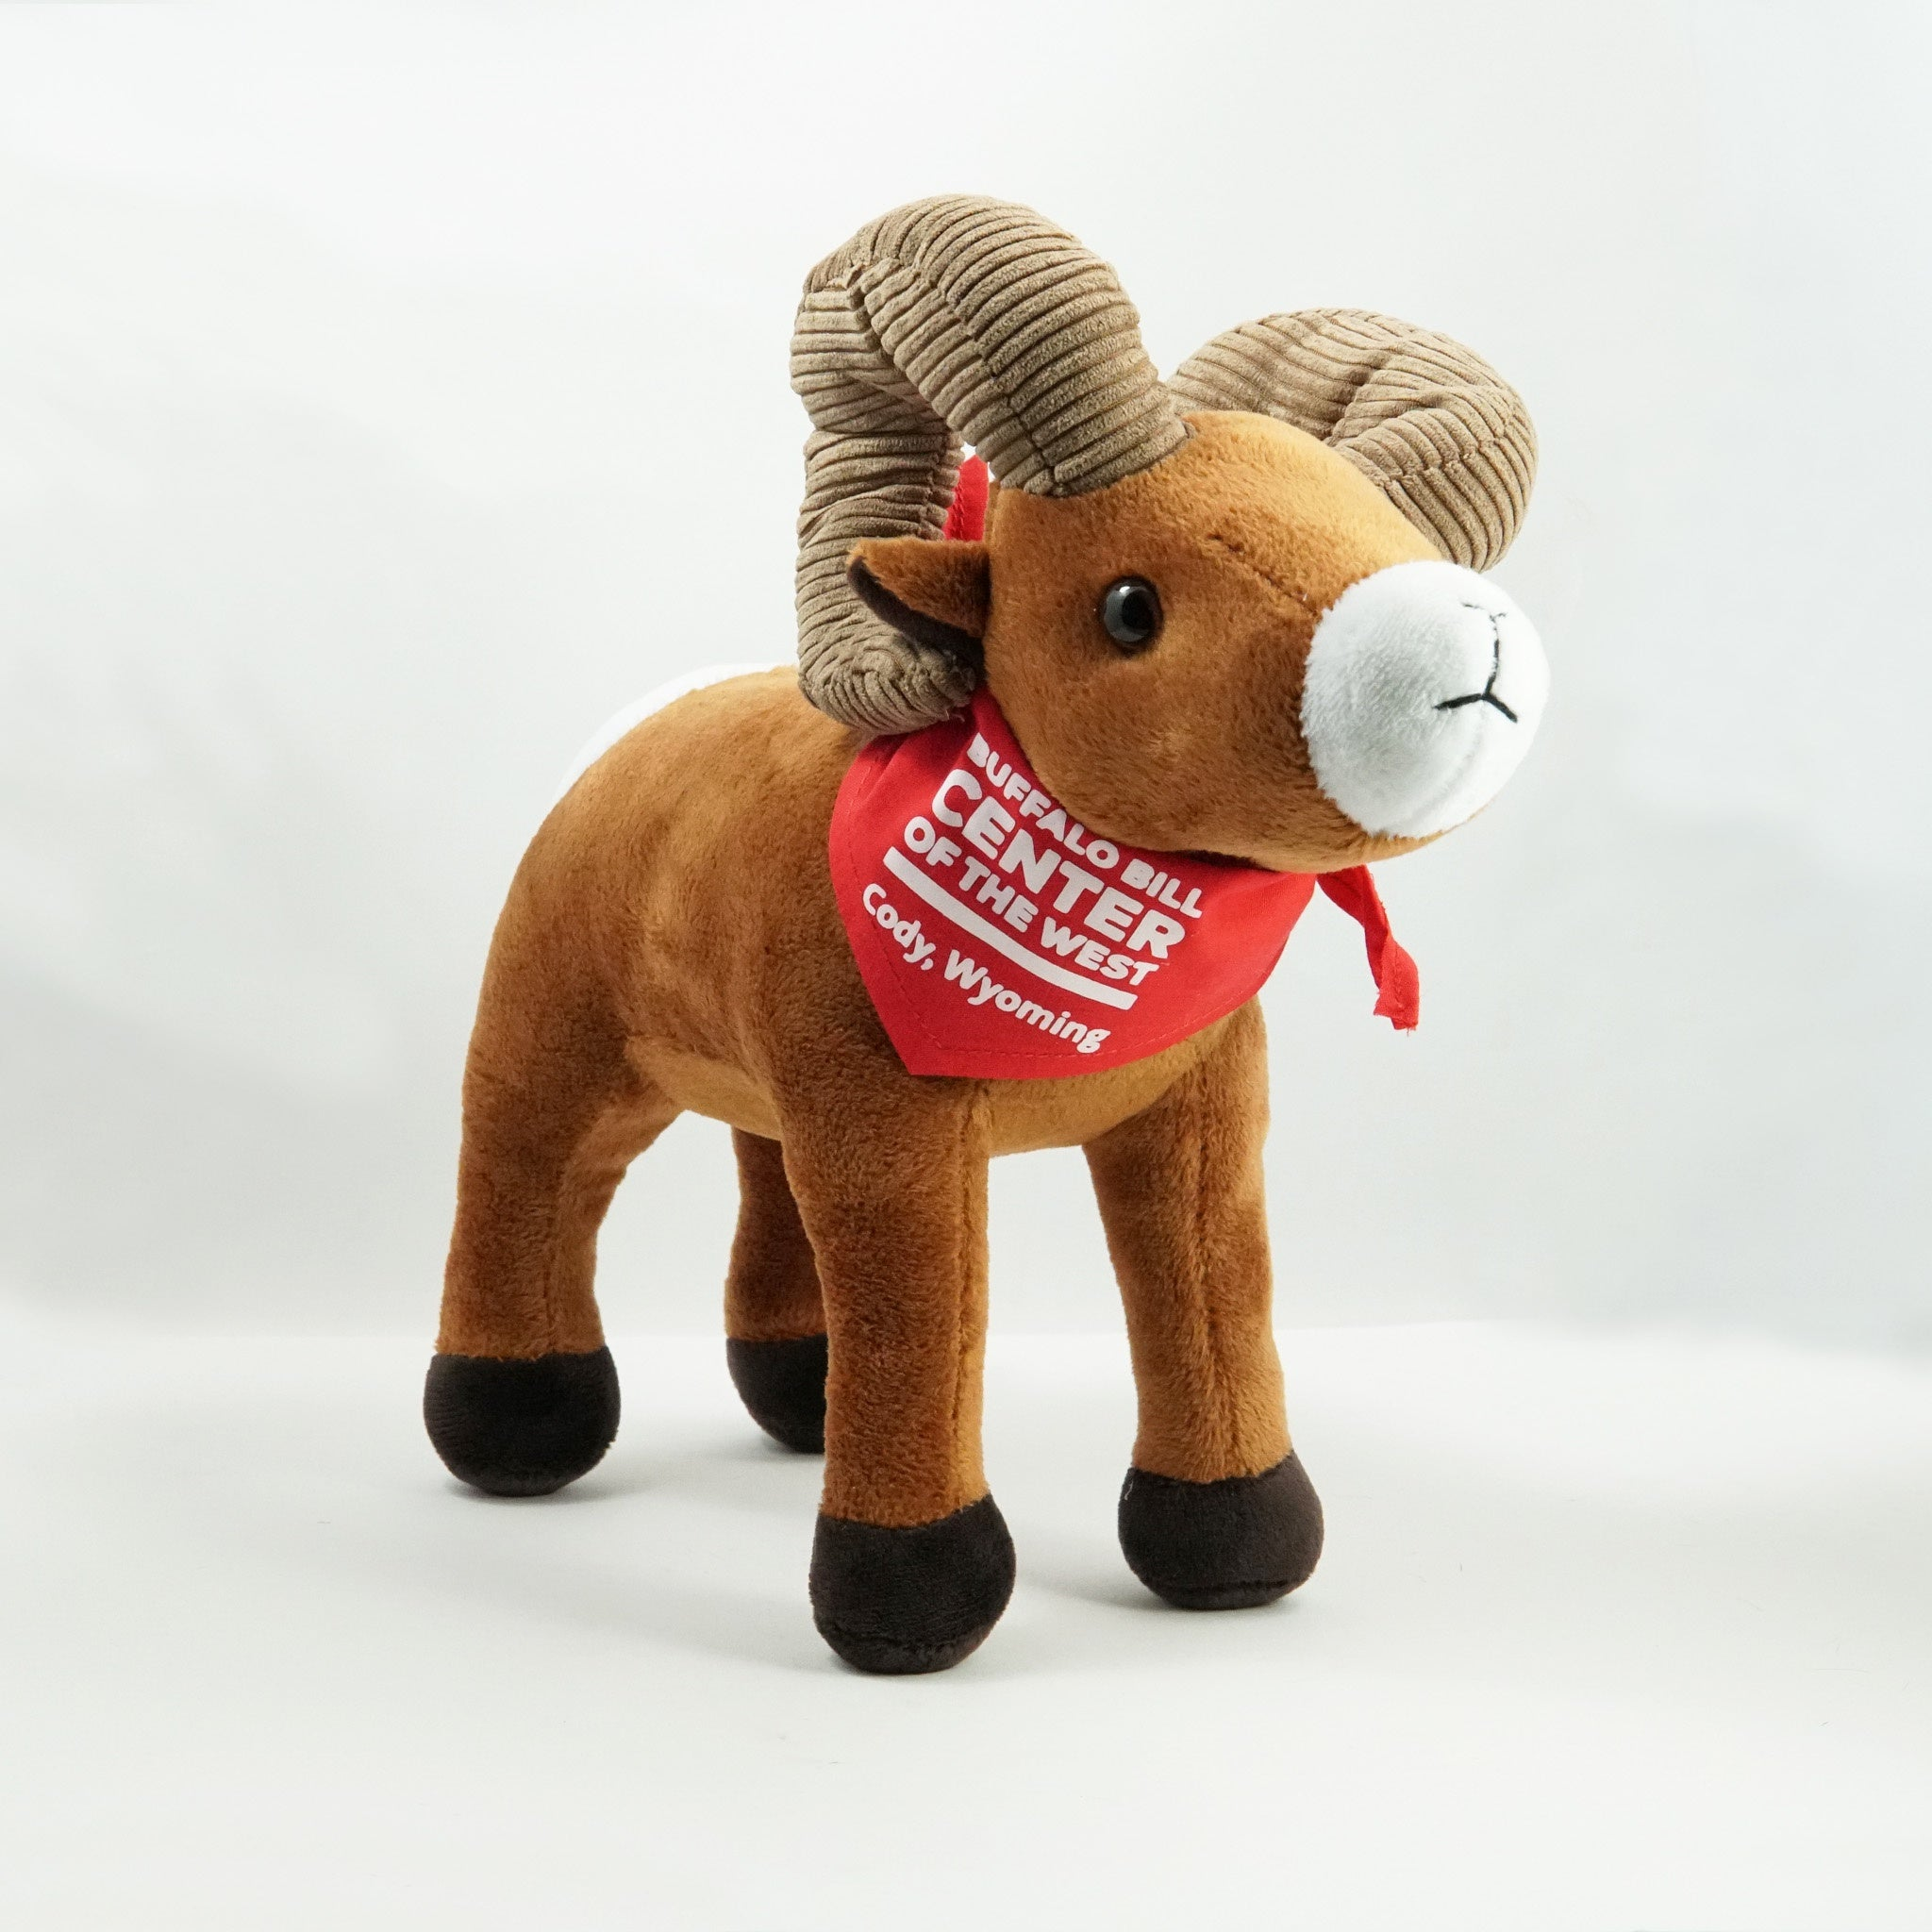 Ramsey the Bighorn Sheep - 41047843